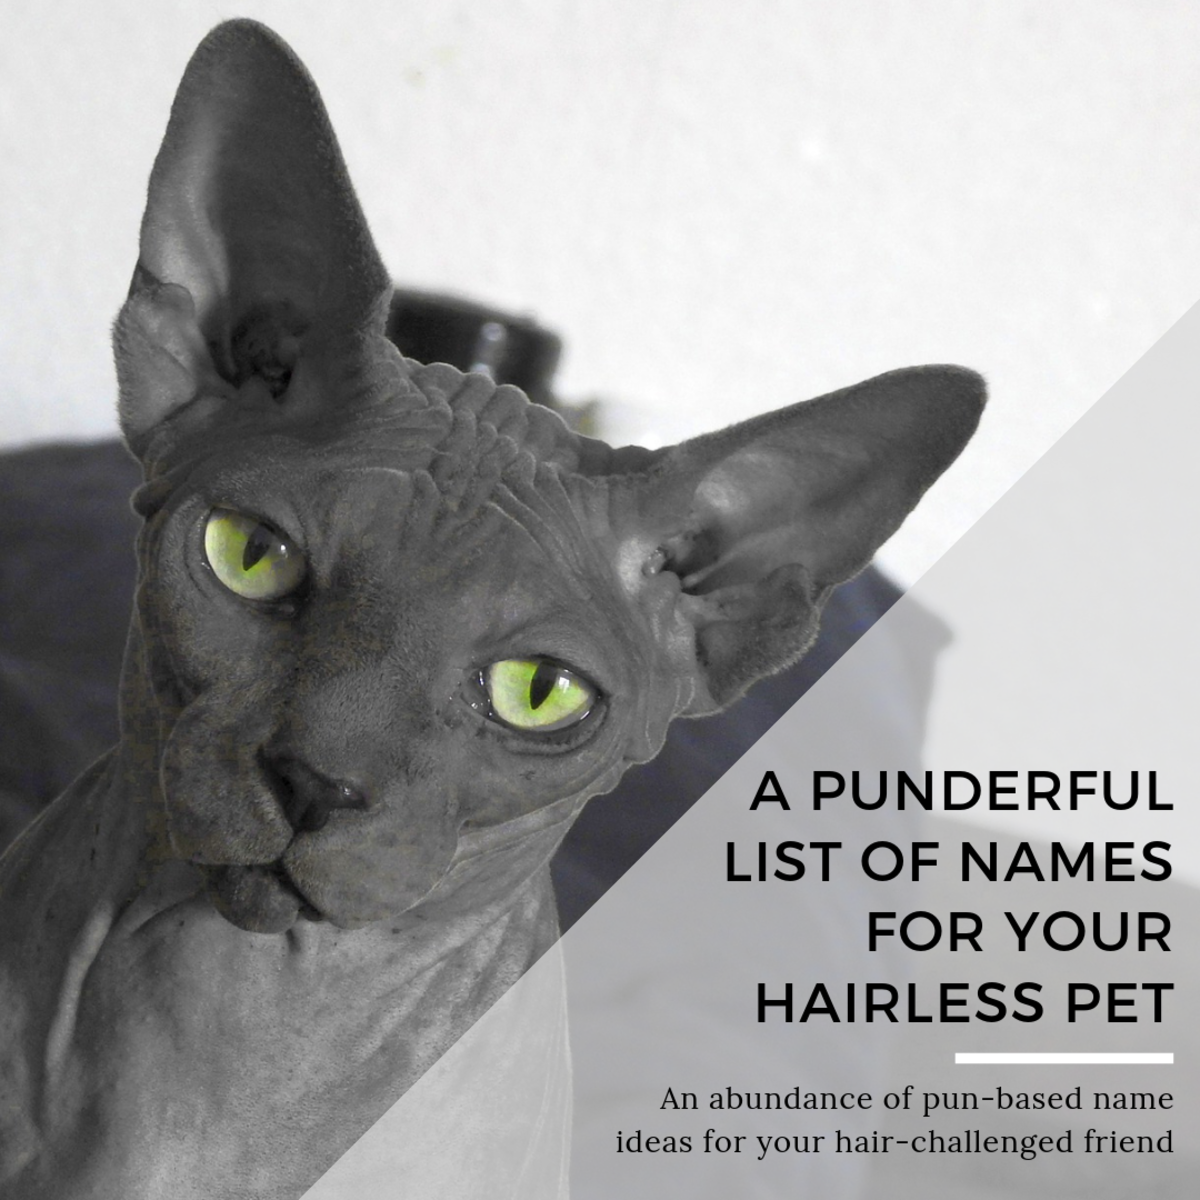 Punderful Names for Hairless Pets